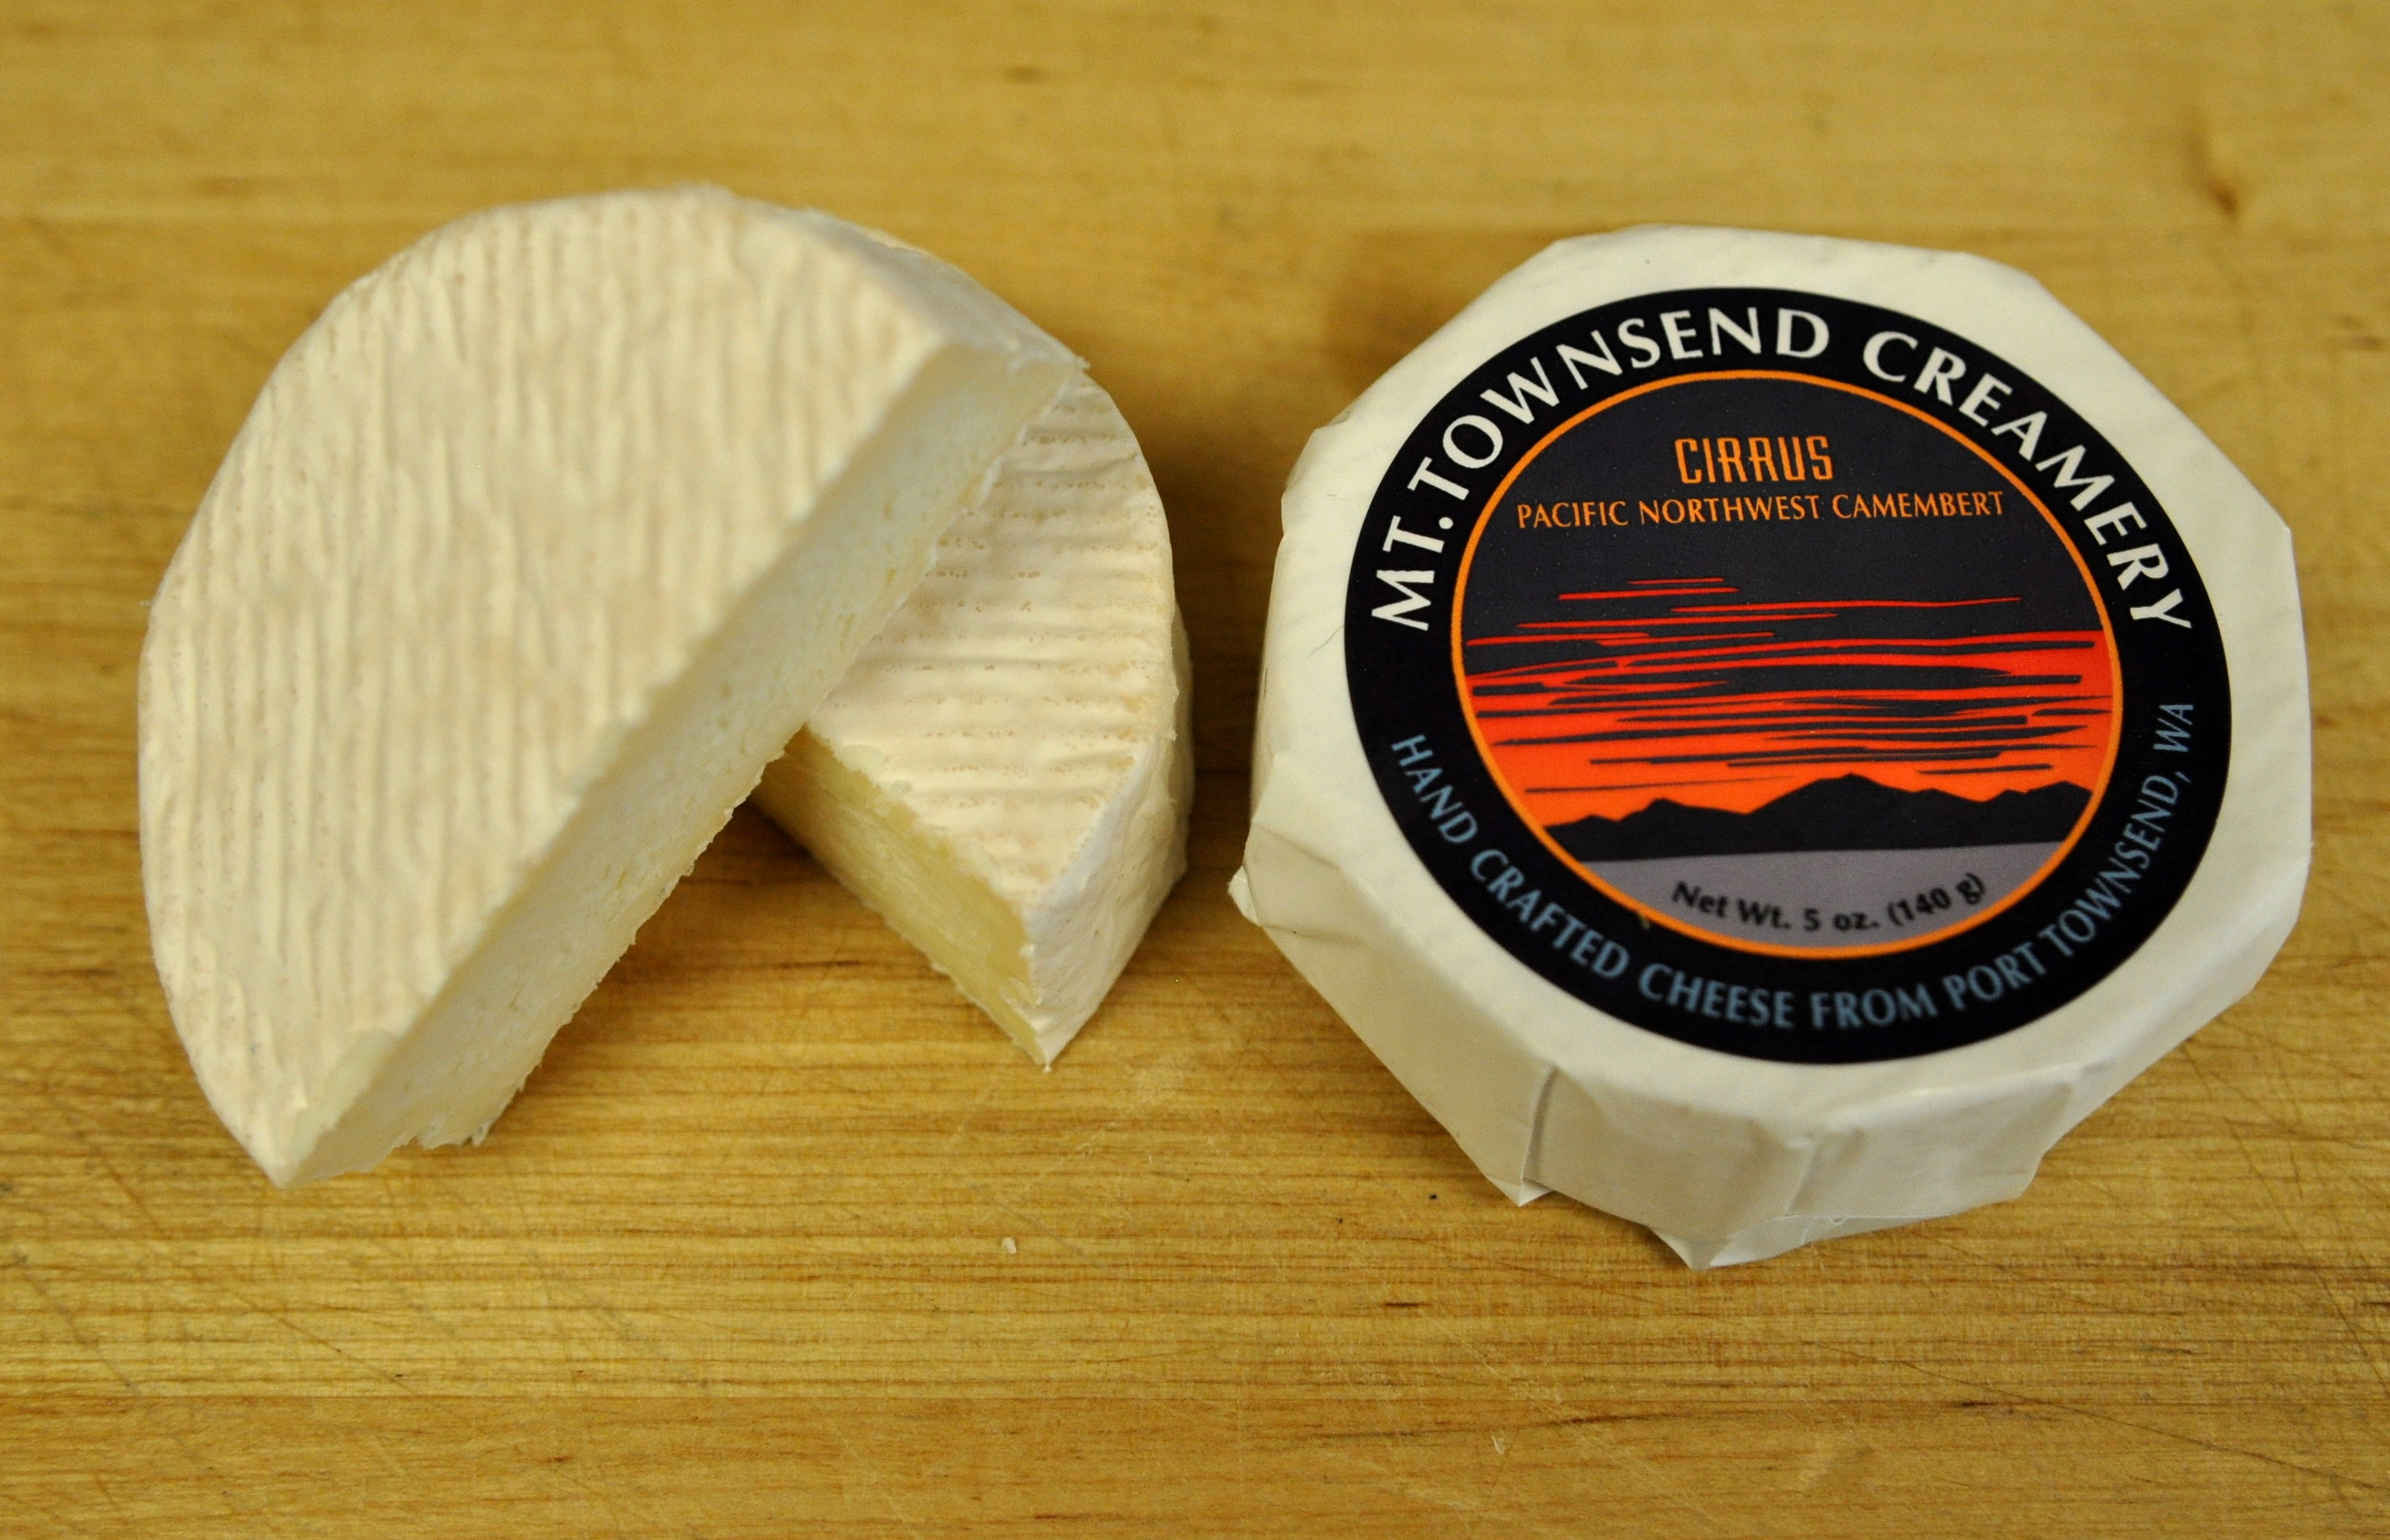 Cirrus cheese from Mt. Townsend Creamery at Ballard Farmers Market. Copyright Zachary D. Lyons.